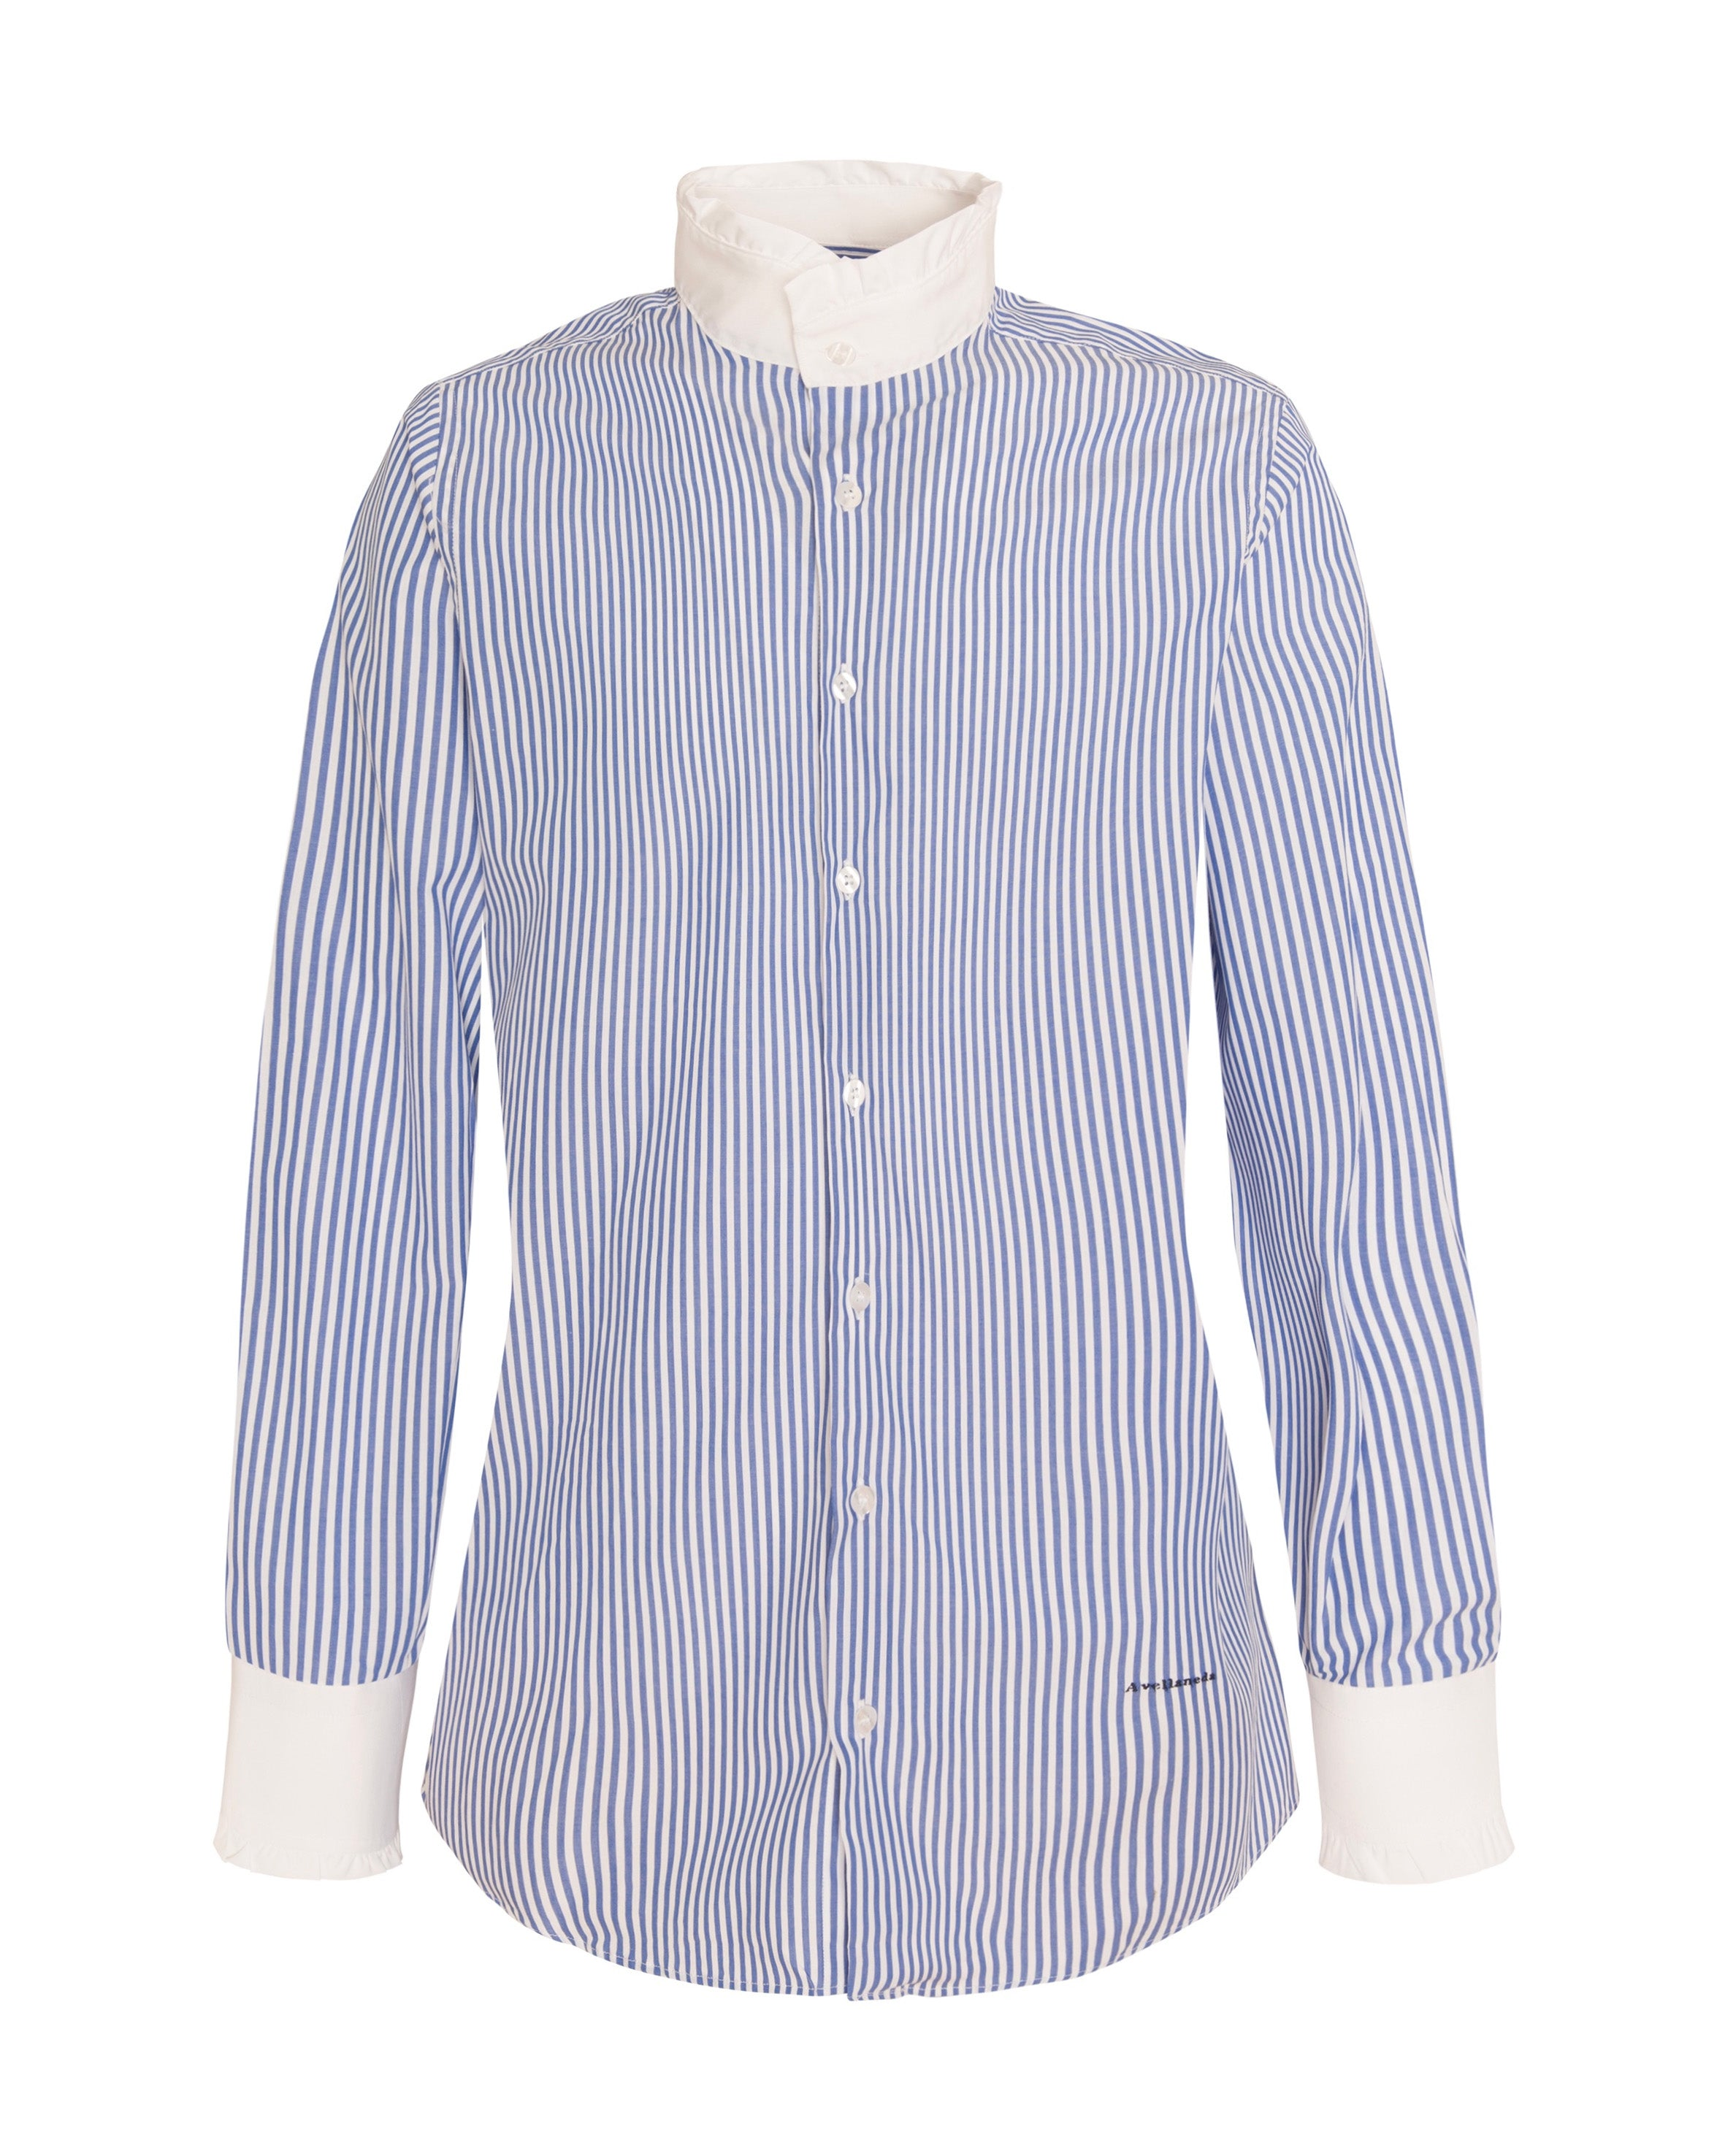 WOMEN'S NECK & CUFFS FRILL STRIPED SHIRT